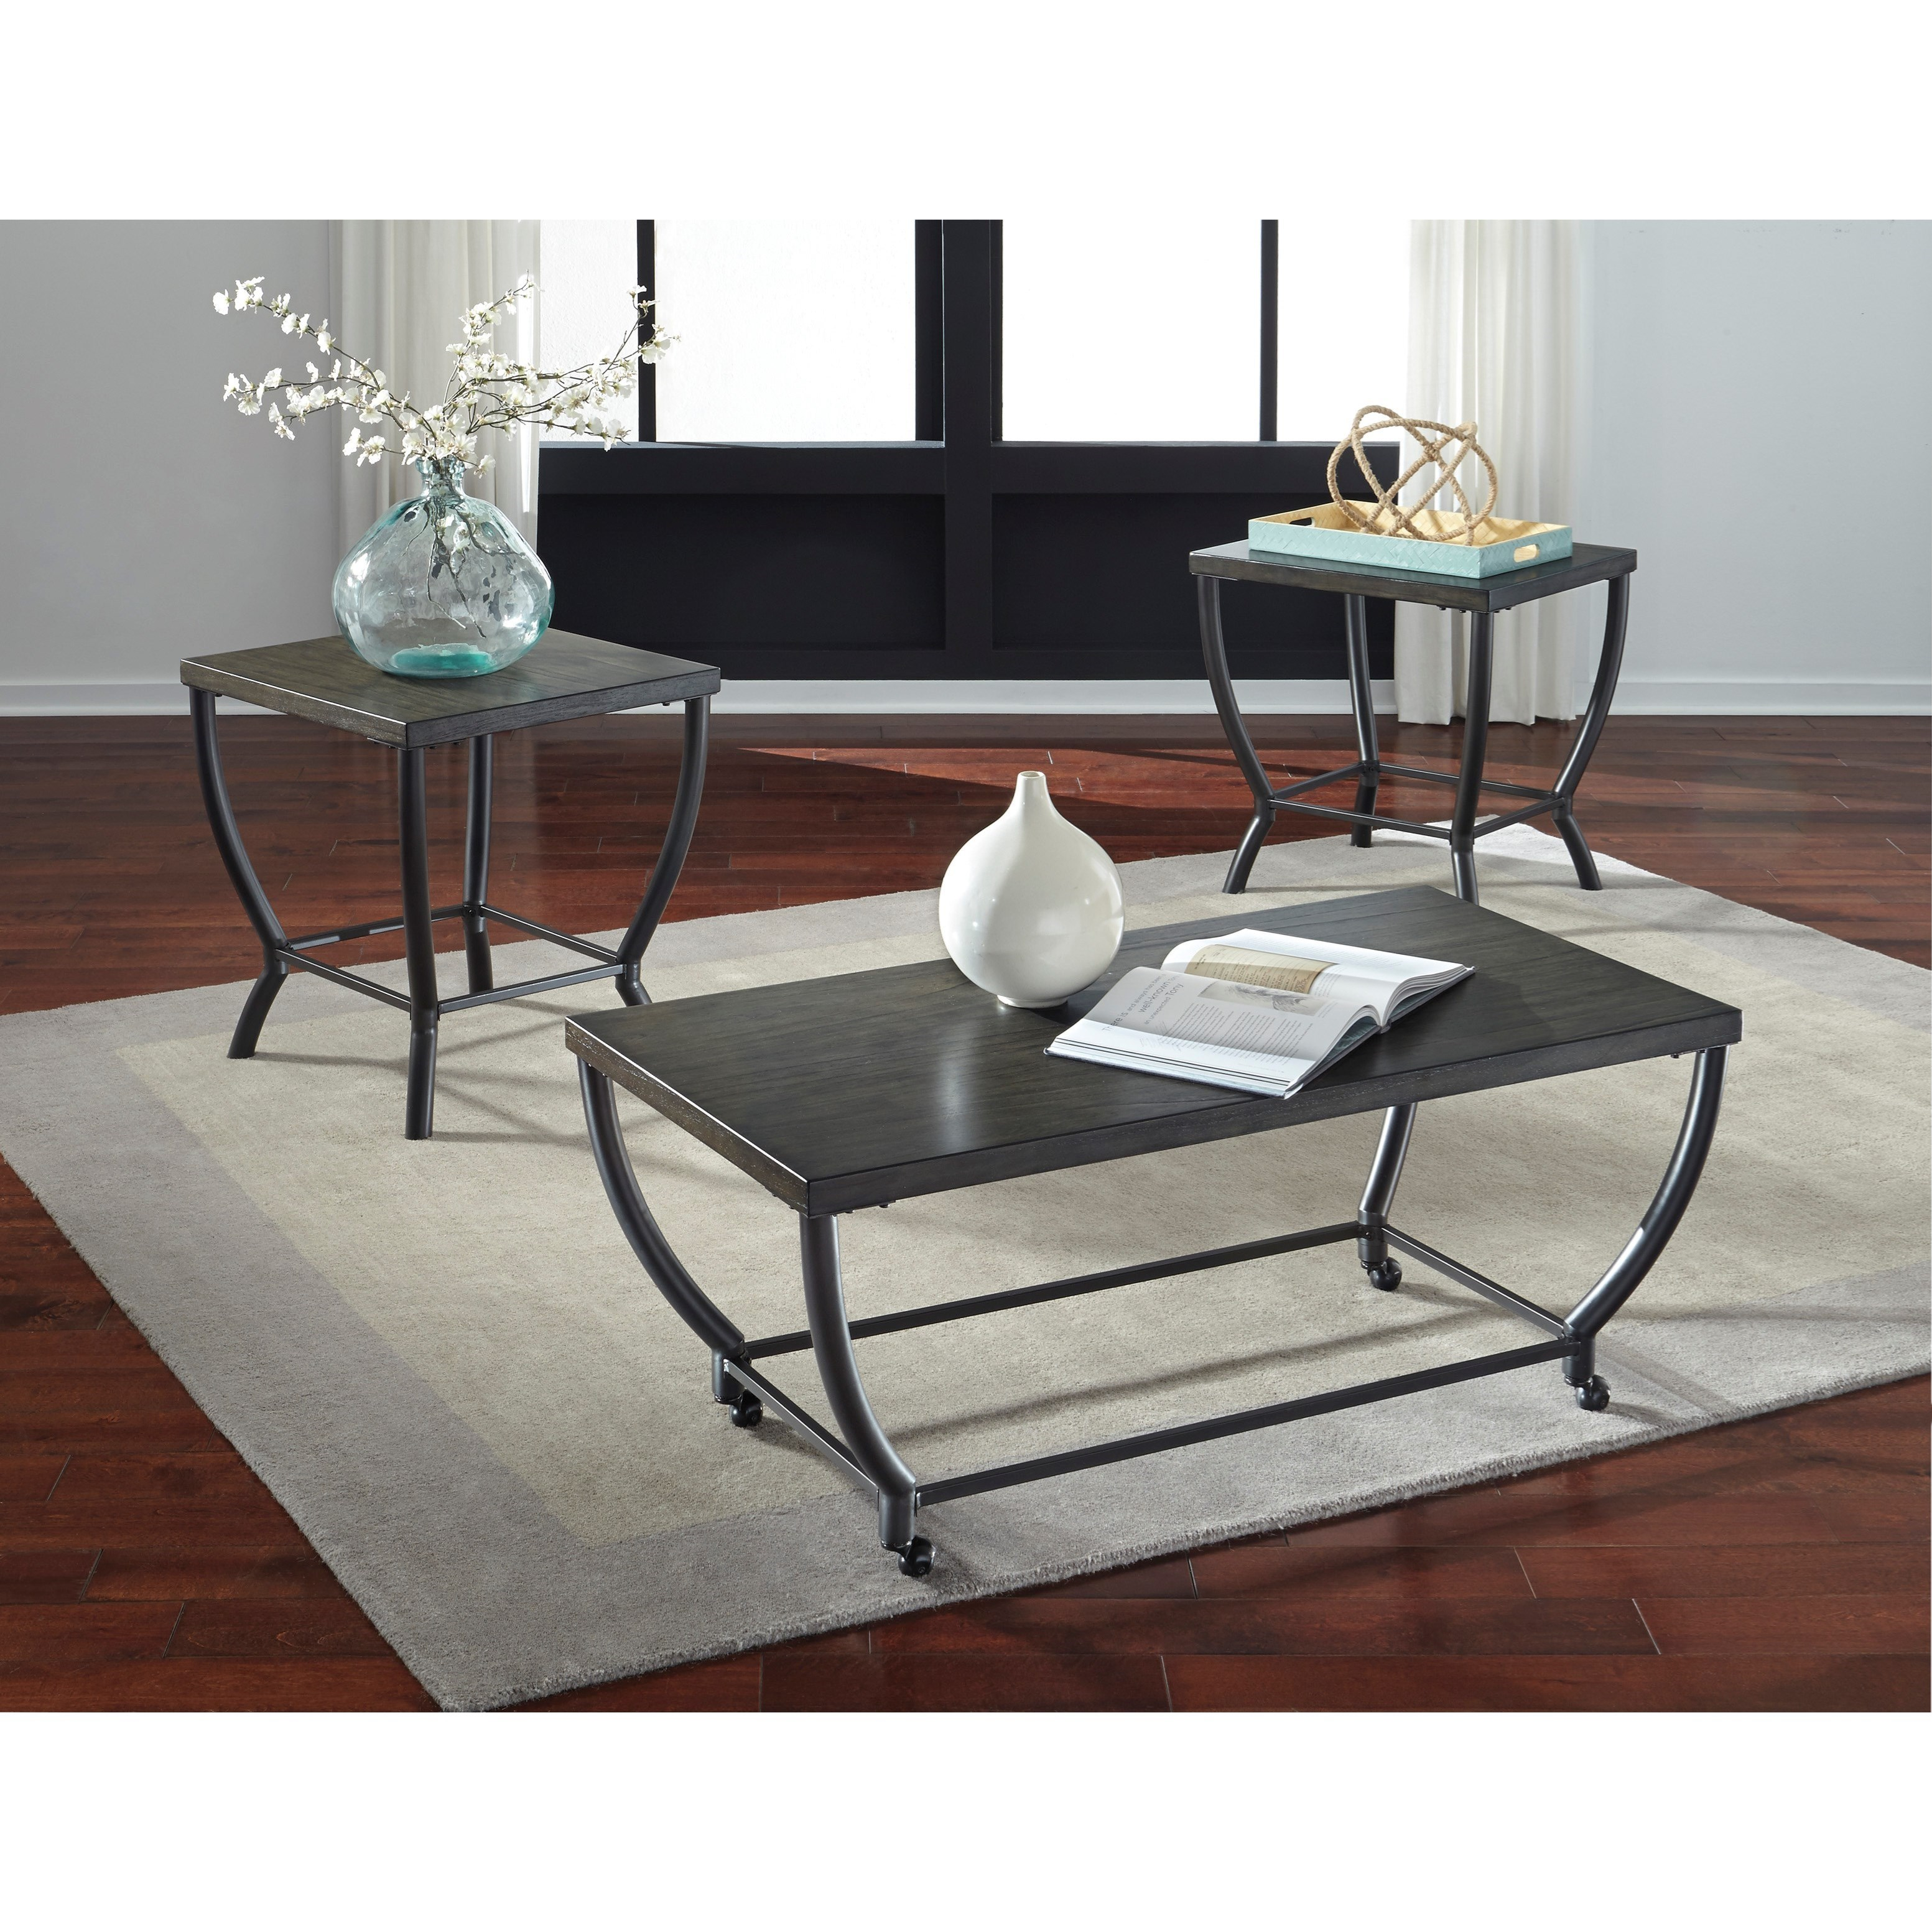 Ashley Furniture Outlet Wausau: Signature Design By Ashley Champori T048-13 Contemporary